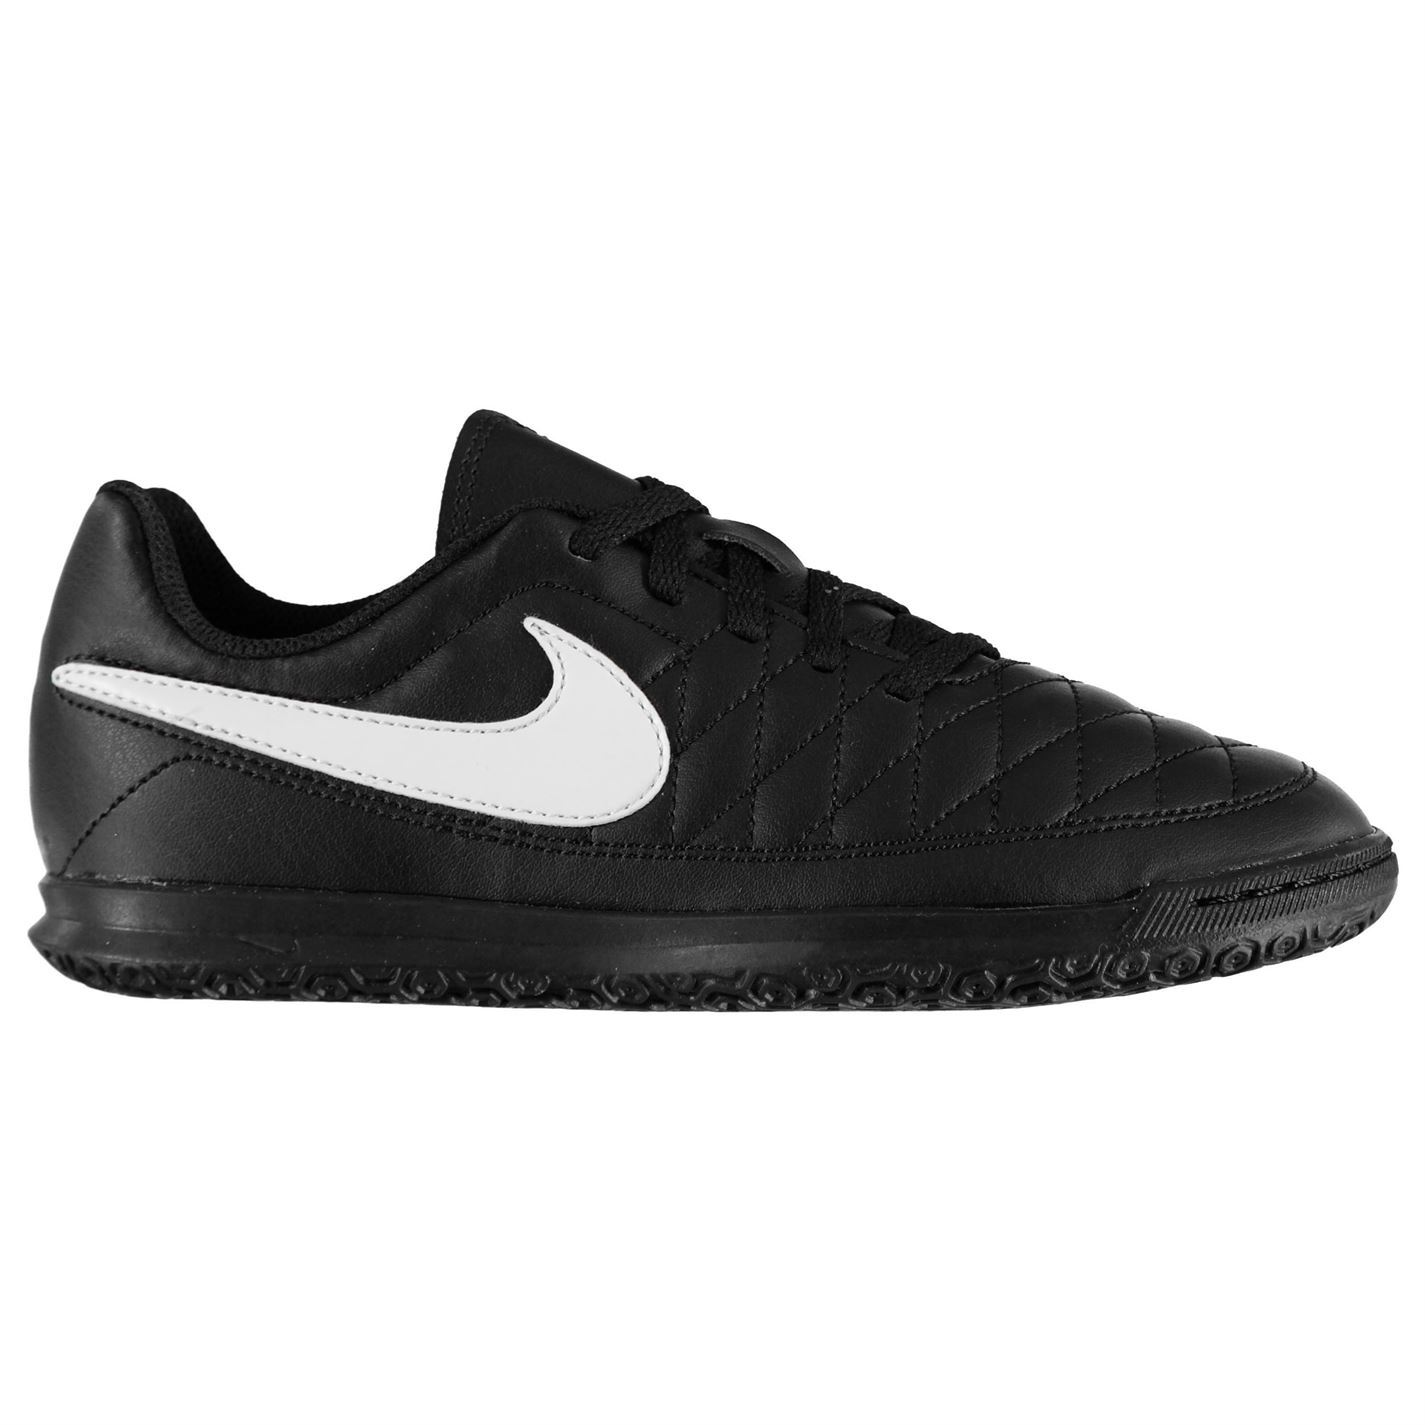 Nike-majestry-Indoor-Court-Football-Baskets-enfant-foot-baskets-chaussures miniature 12